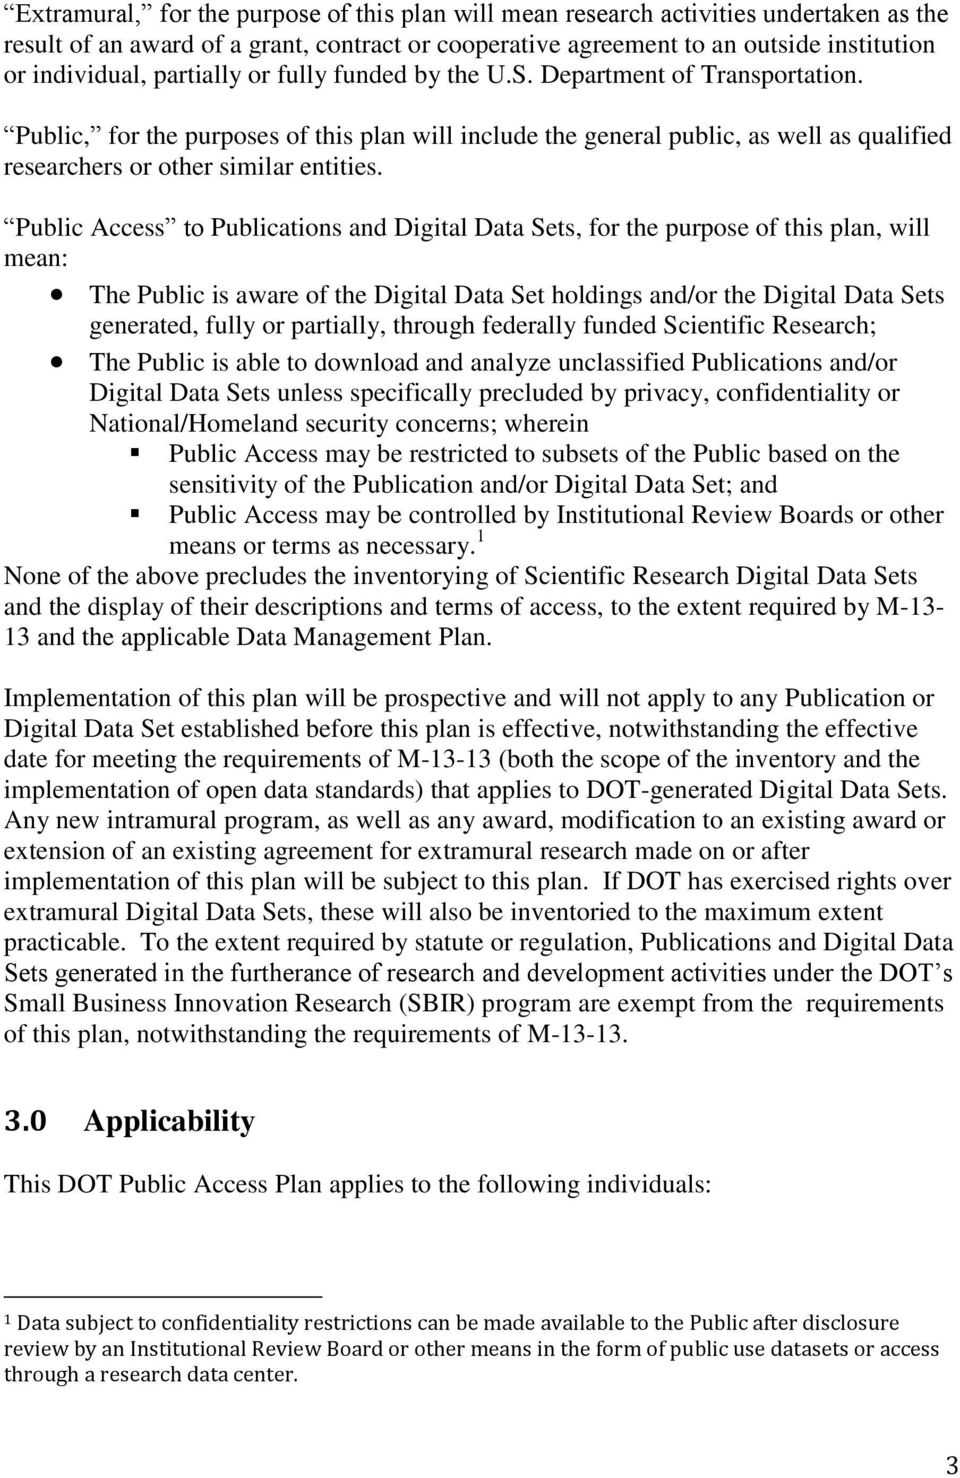 Public Access to Publications and Digital Data Sets, for the purpose of this plan, will mean: The Public is aware of the Digital Data Set holdings and/or the Digital Data Sets generated, fully or